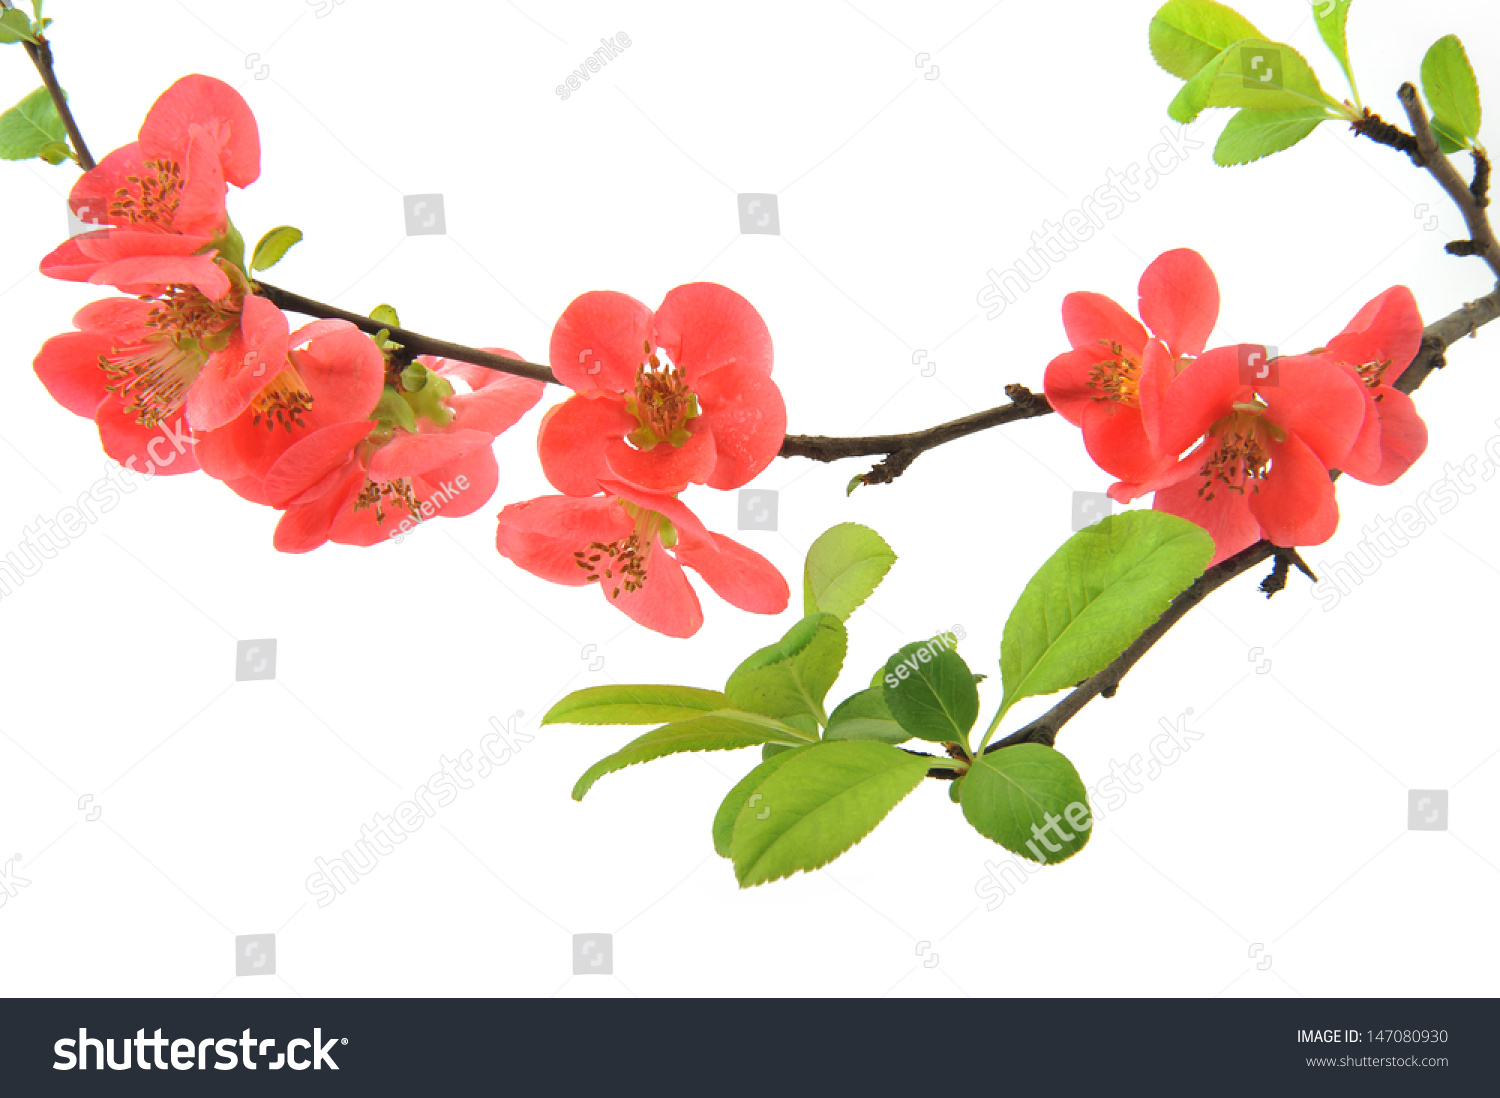 Flowering quince stock photo 147080930 shutterstock flowering quince biocorpaavc Image collections